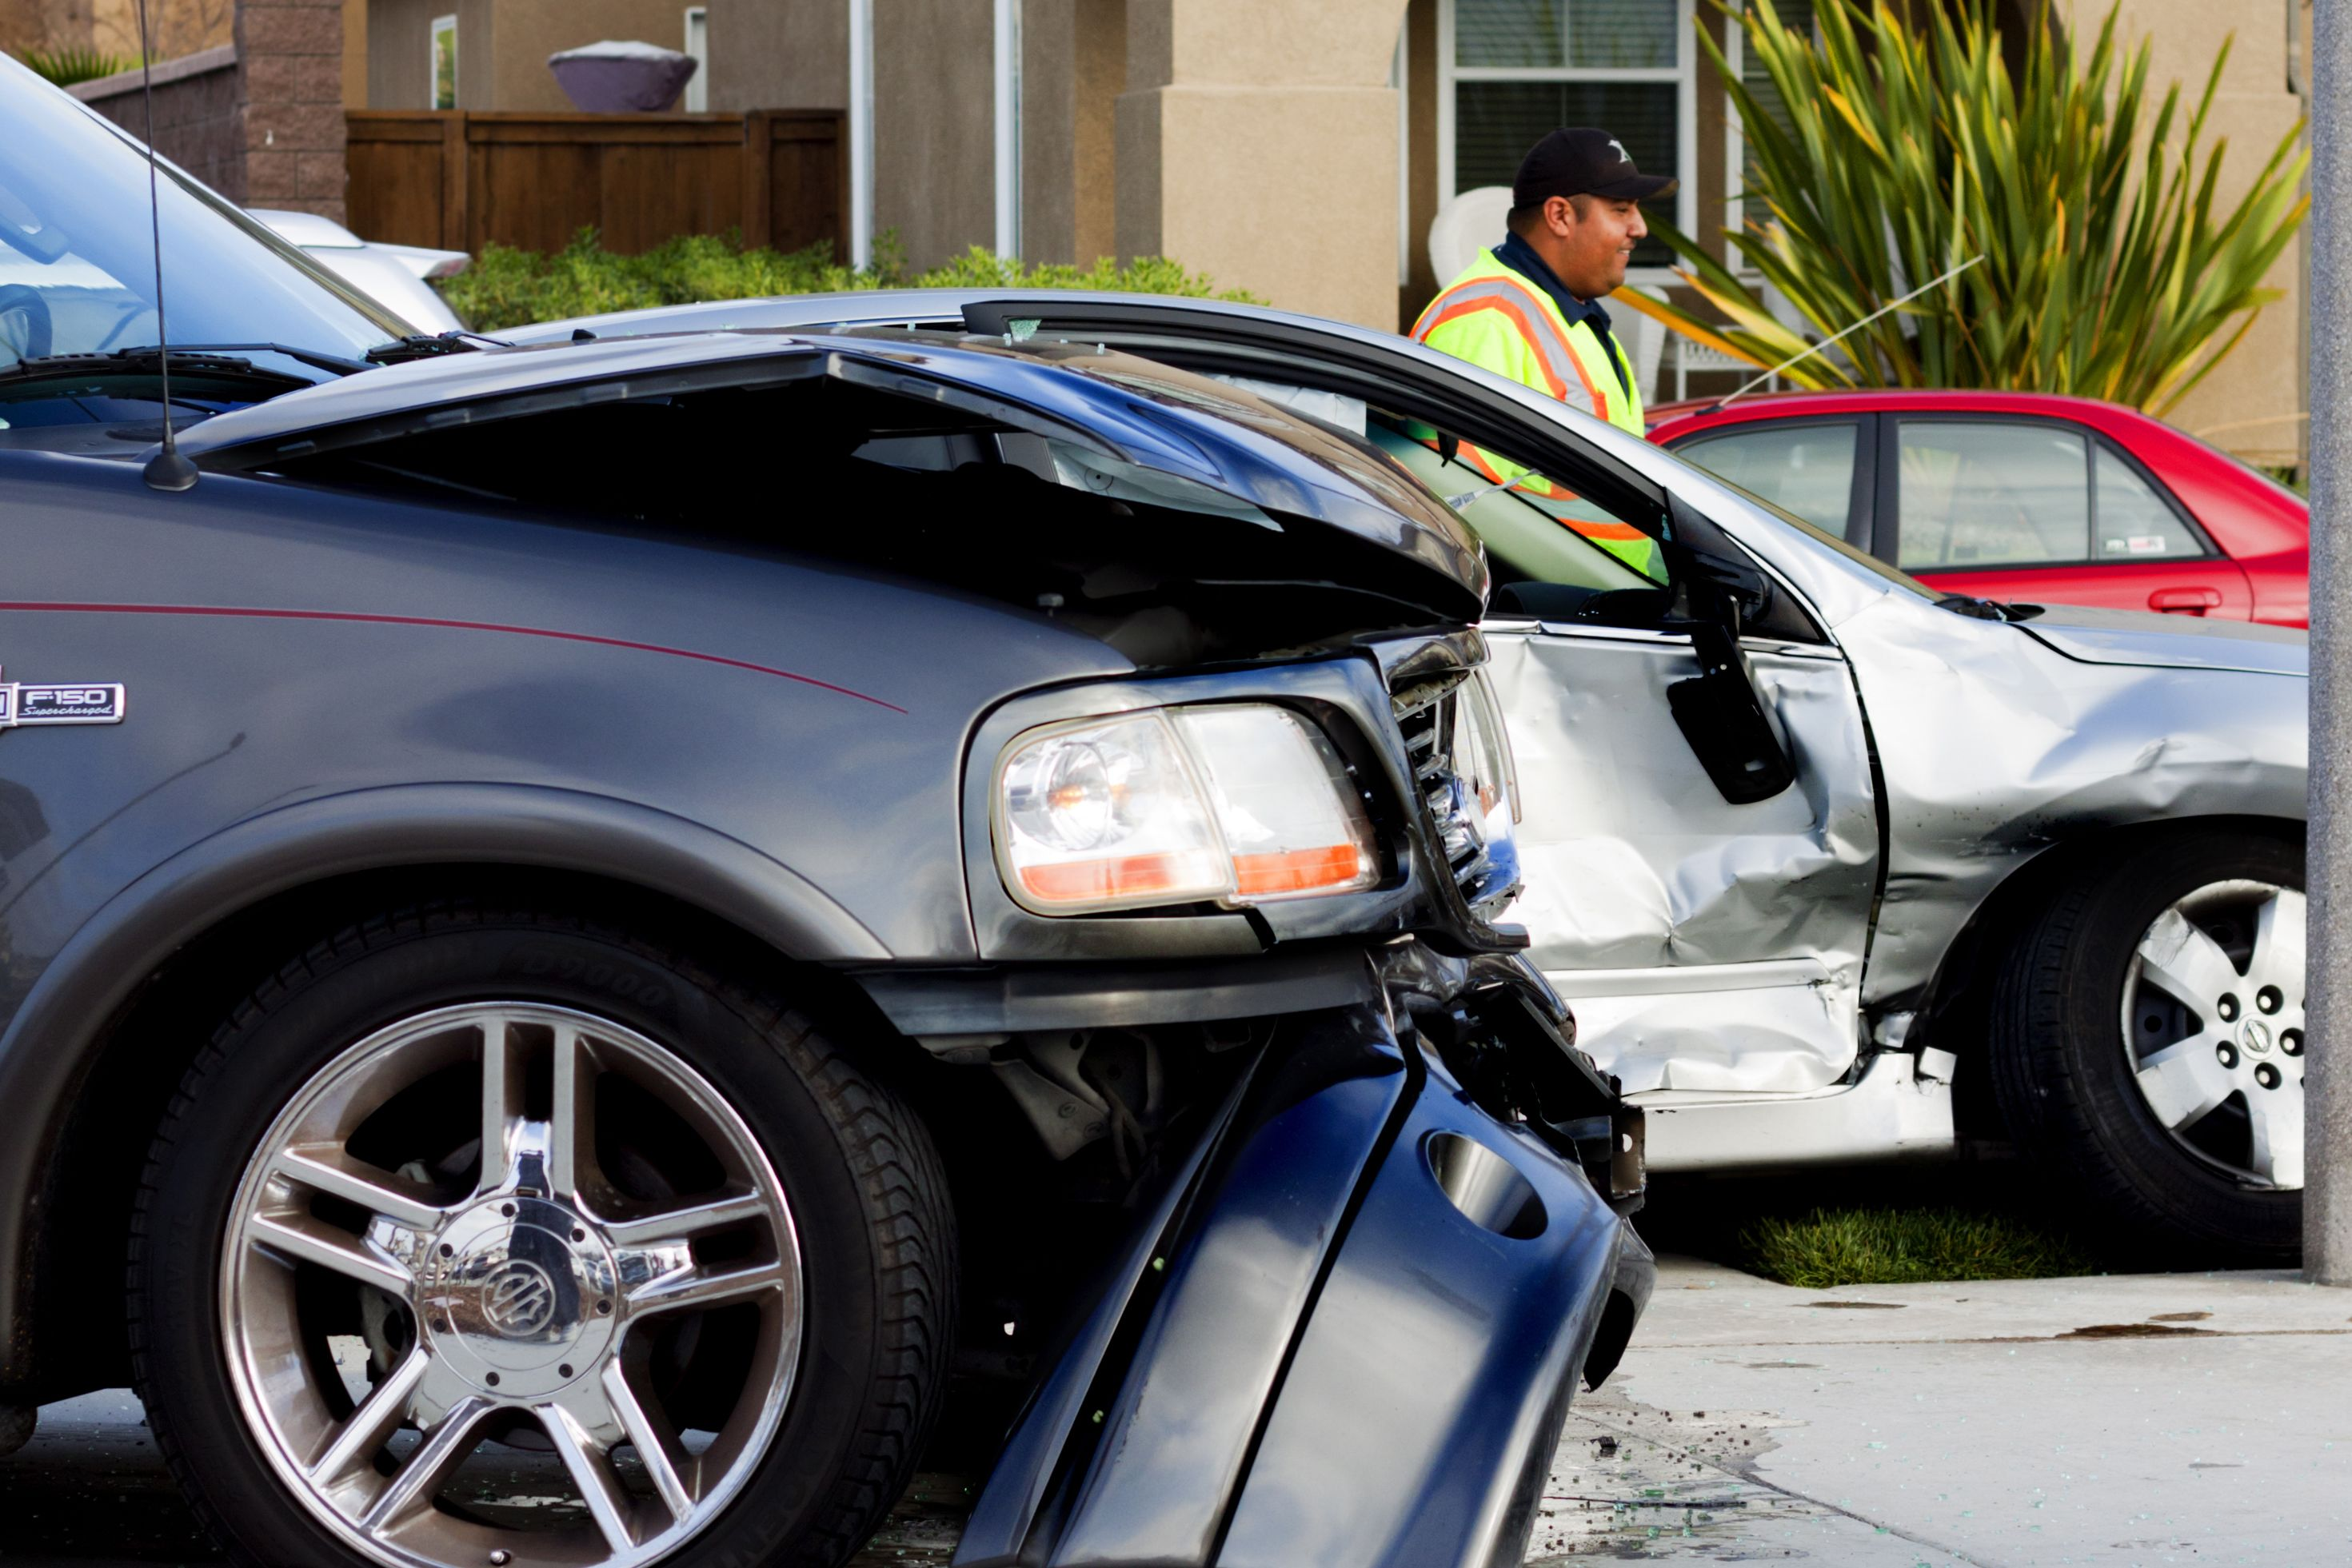 On the Job Injuries: Auto Accidents